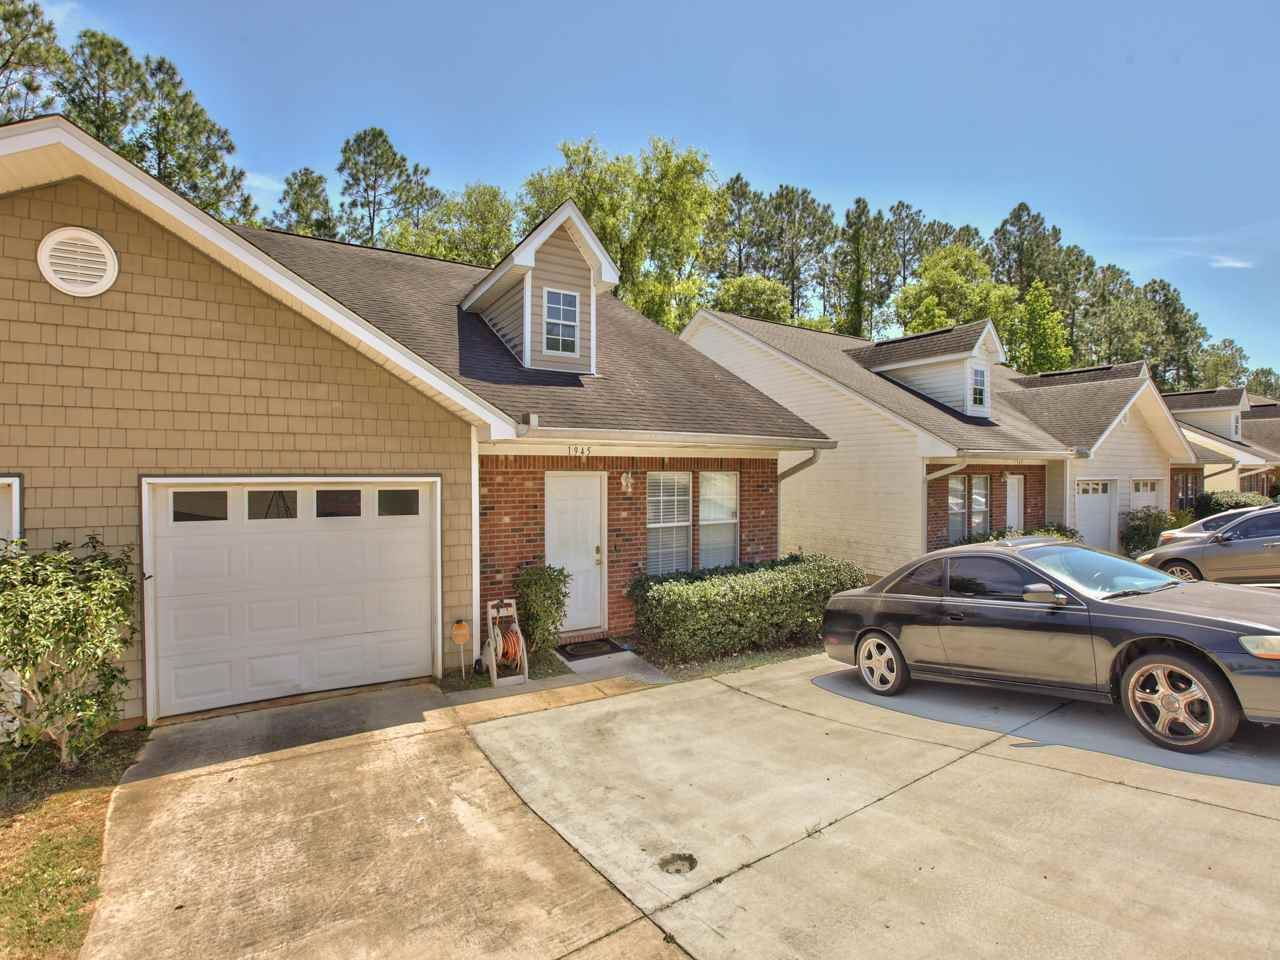 Photo of 1945 Nena Hills Drive, TALLAHASSEE, FL 32303 (MLS # 317422)